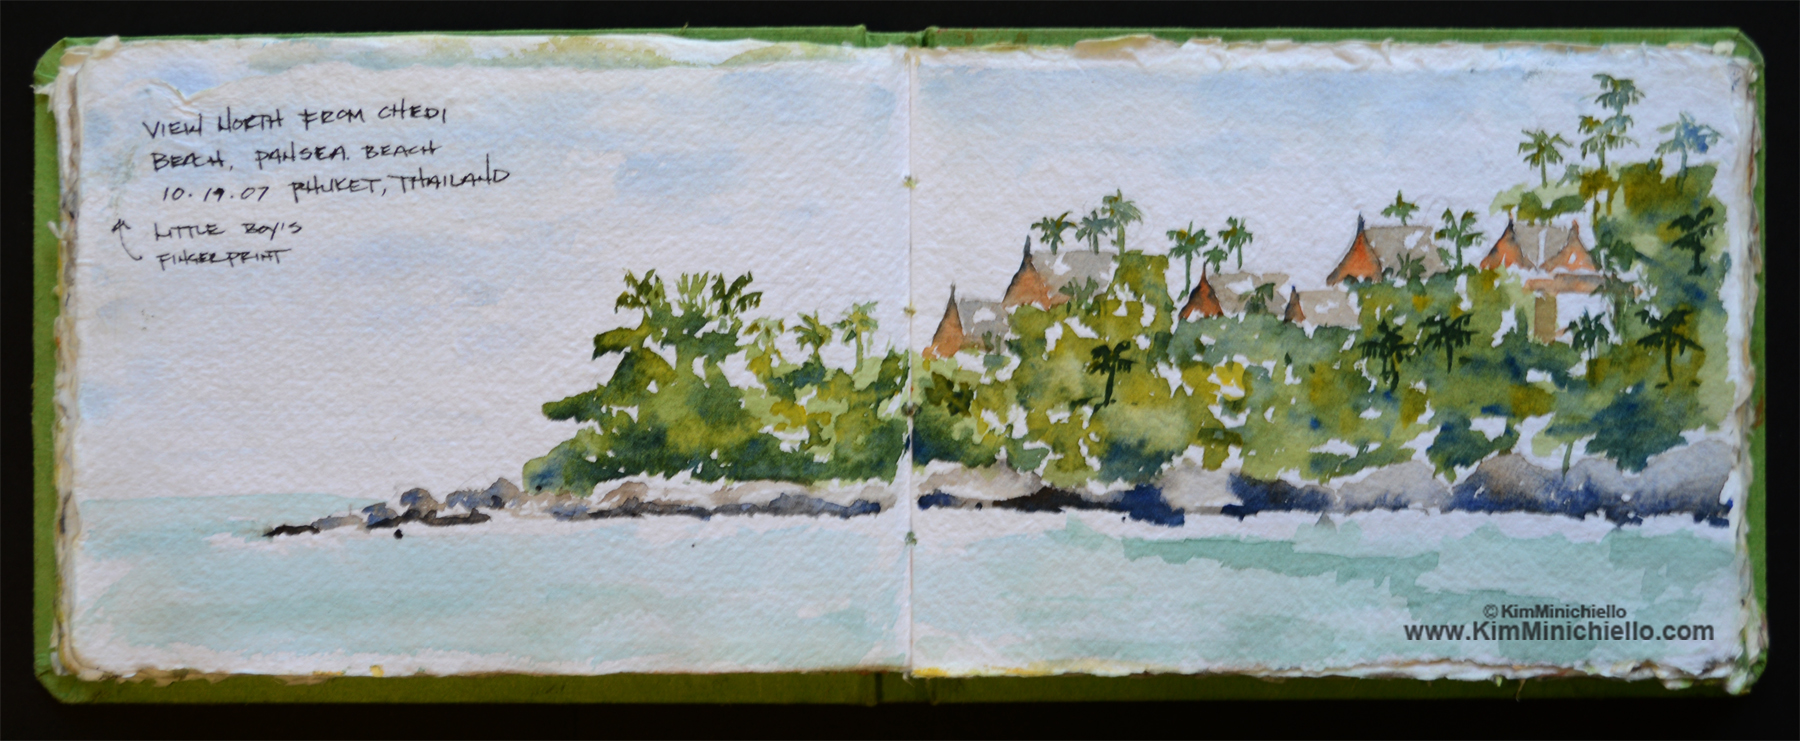 Chedi Beach, Phuket Thailand, Watercolor Sketch